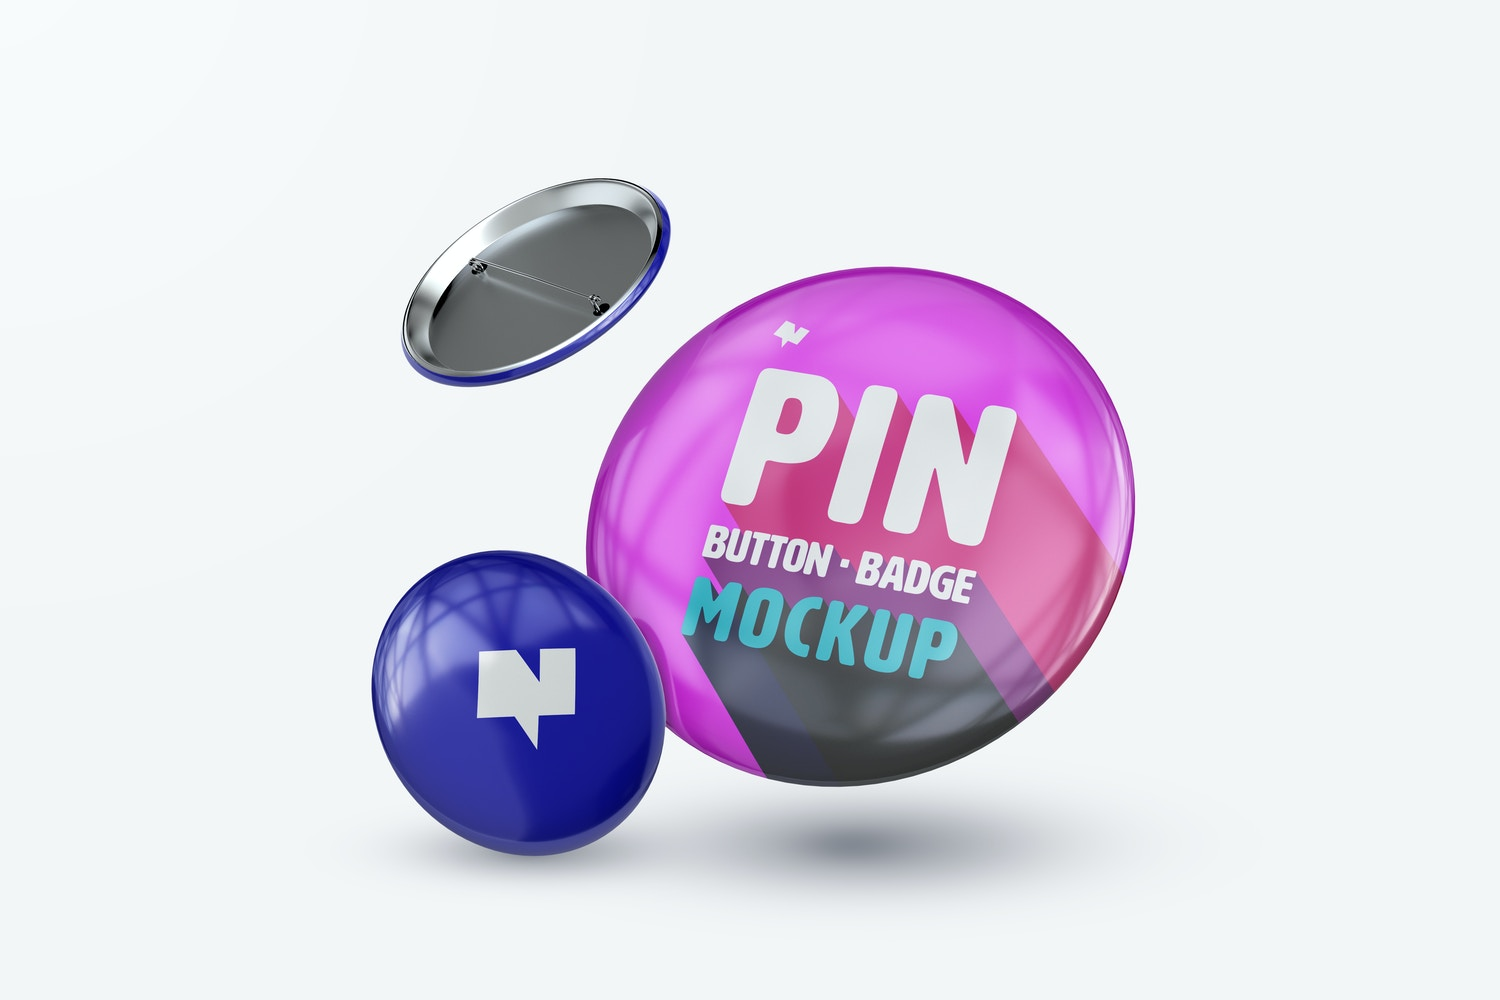 Pin Button Badges Mockup, Two Size Falling